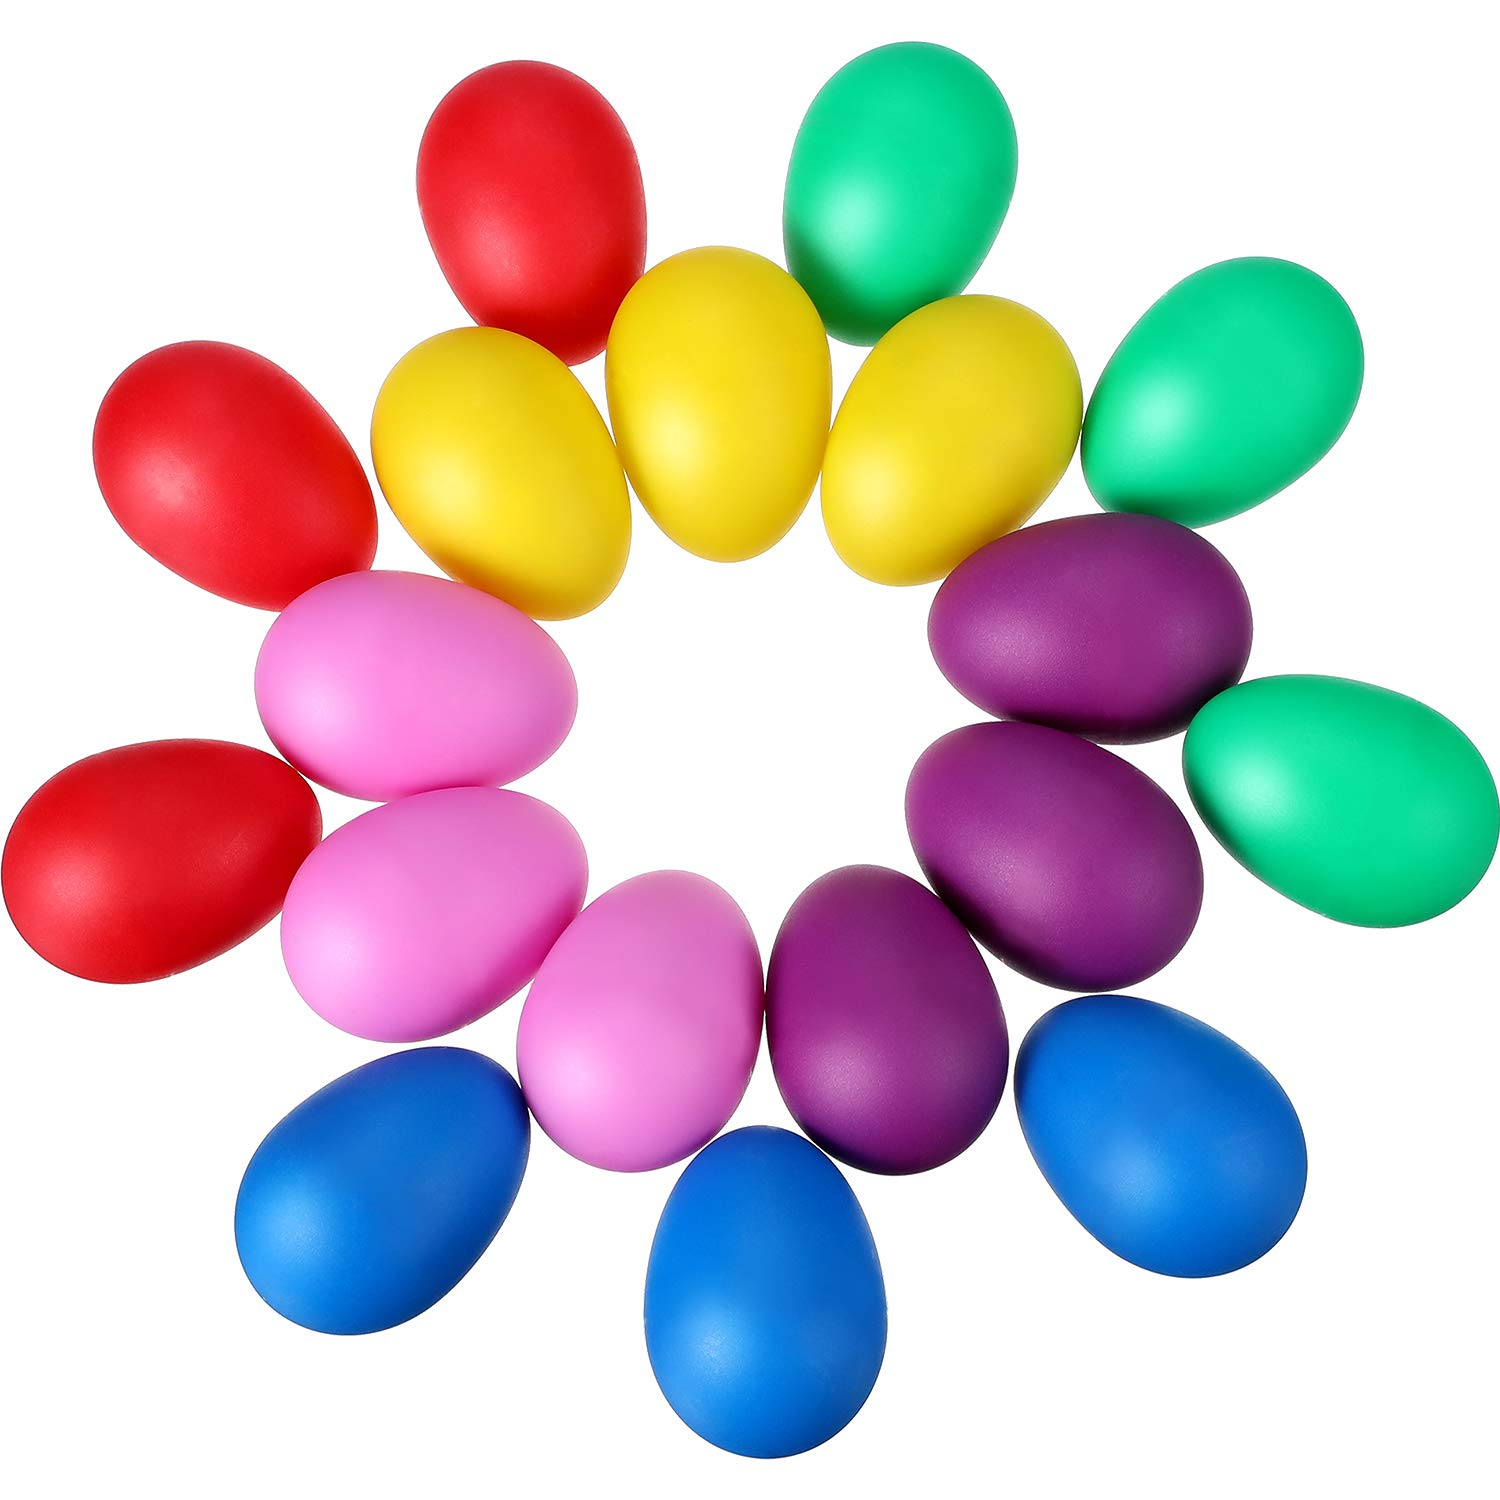 Hestya 18 Pieces Maracas Eggs Plastic Egg Shakers Set Maracas Eggs Shakers for Kids Party Favors Musical Toys, 6 Colors